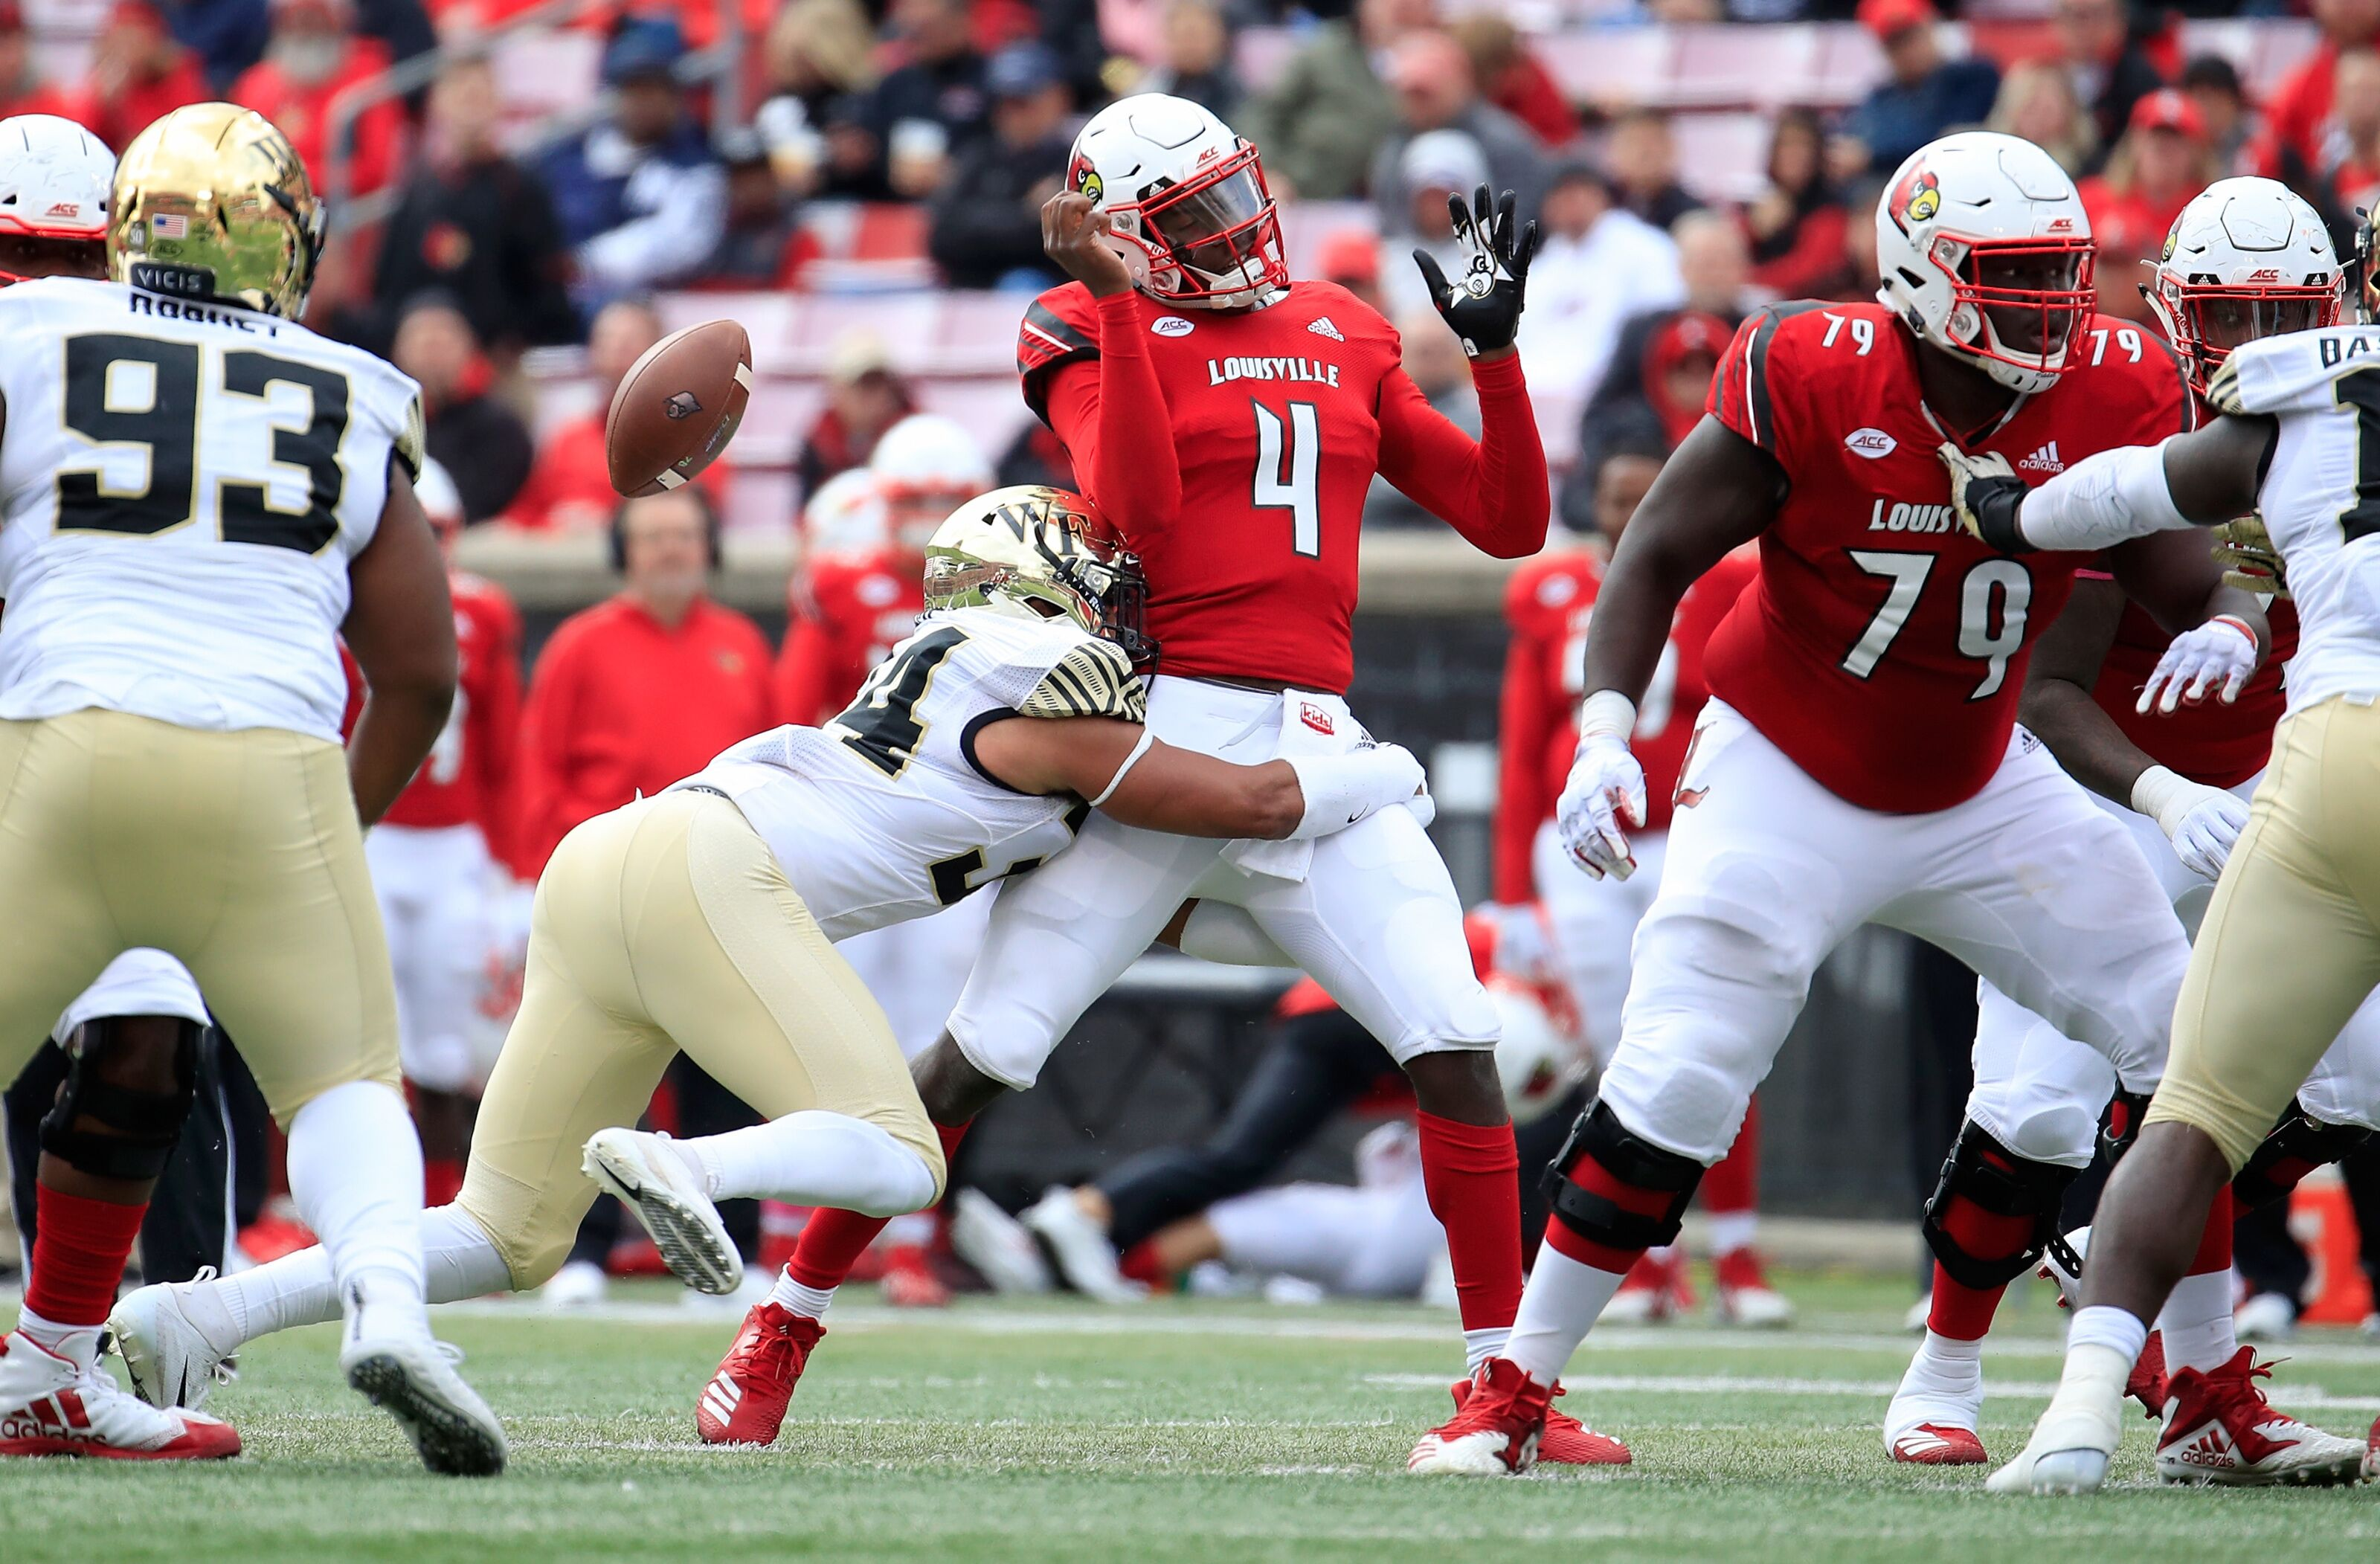 Louisville football: The spread is huge, but Clemson is ...